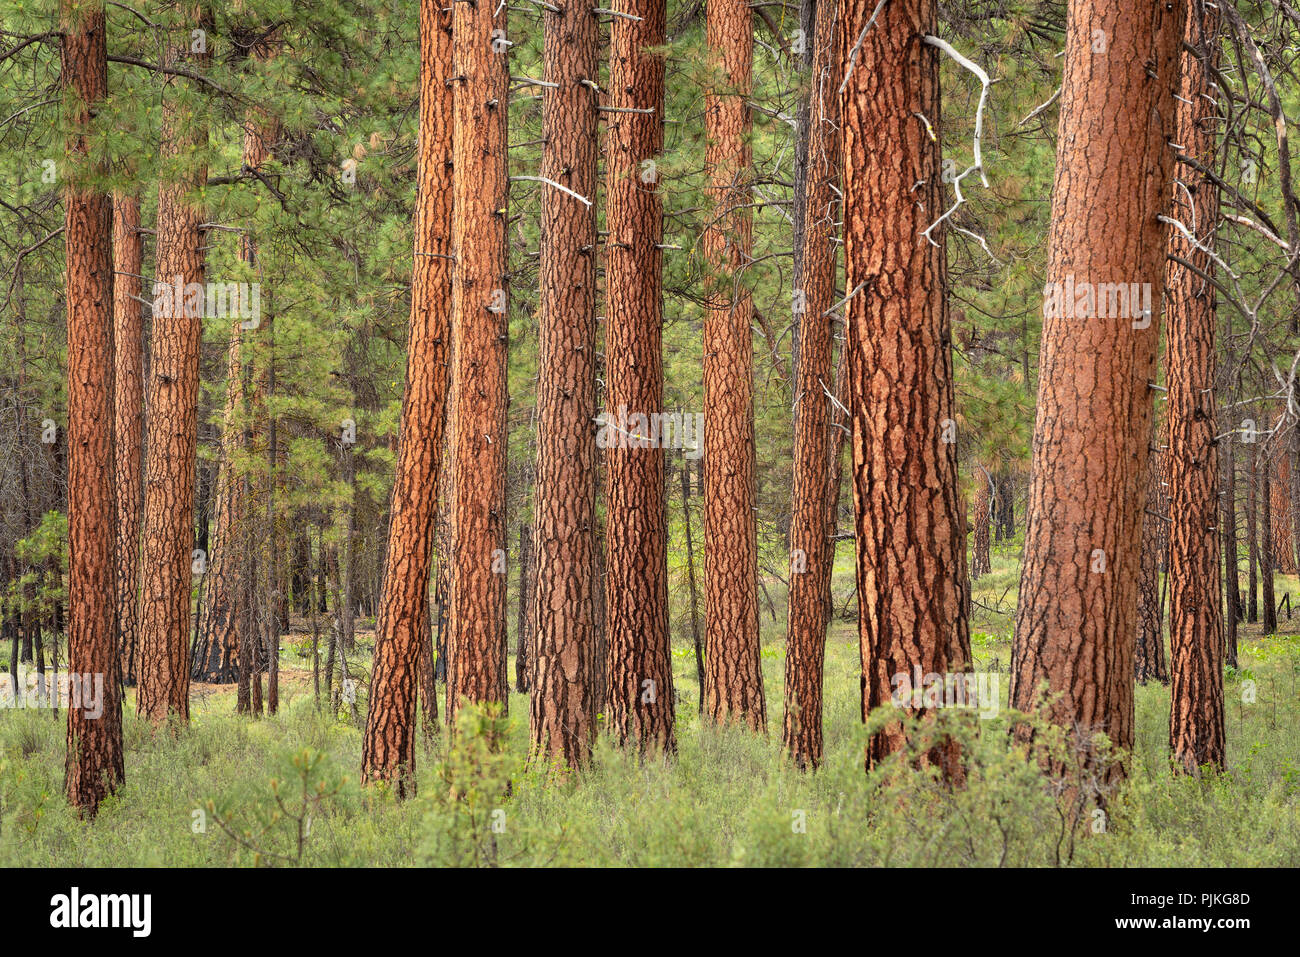 Ponderosa Pine trees in the Metolius River Natural Area, Deschutes National Forest, central Oregon. - Stock Image